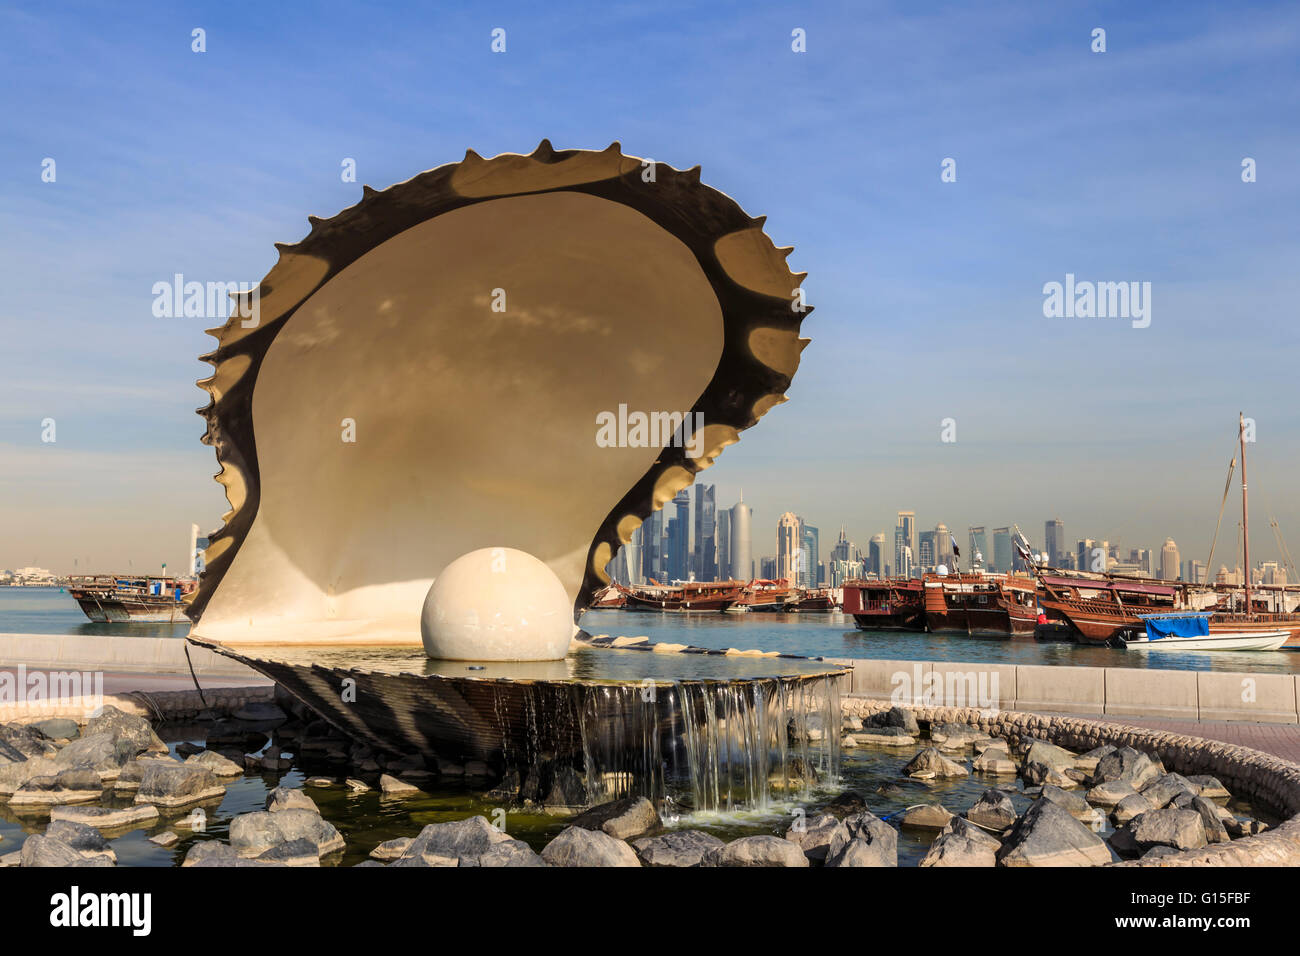 Pearl Monument with moored dhows and modern city skyline of West Bay, from Al-Corniche, Doha, Qatar, Middle East - Stock Image